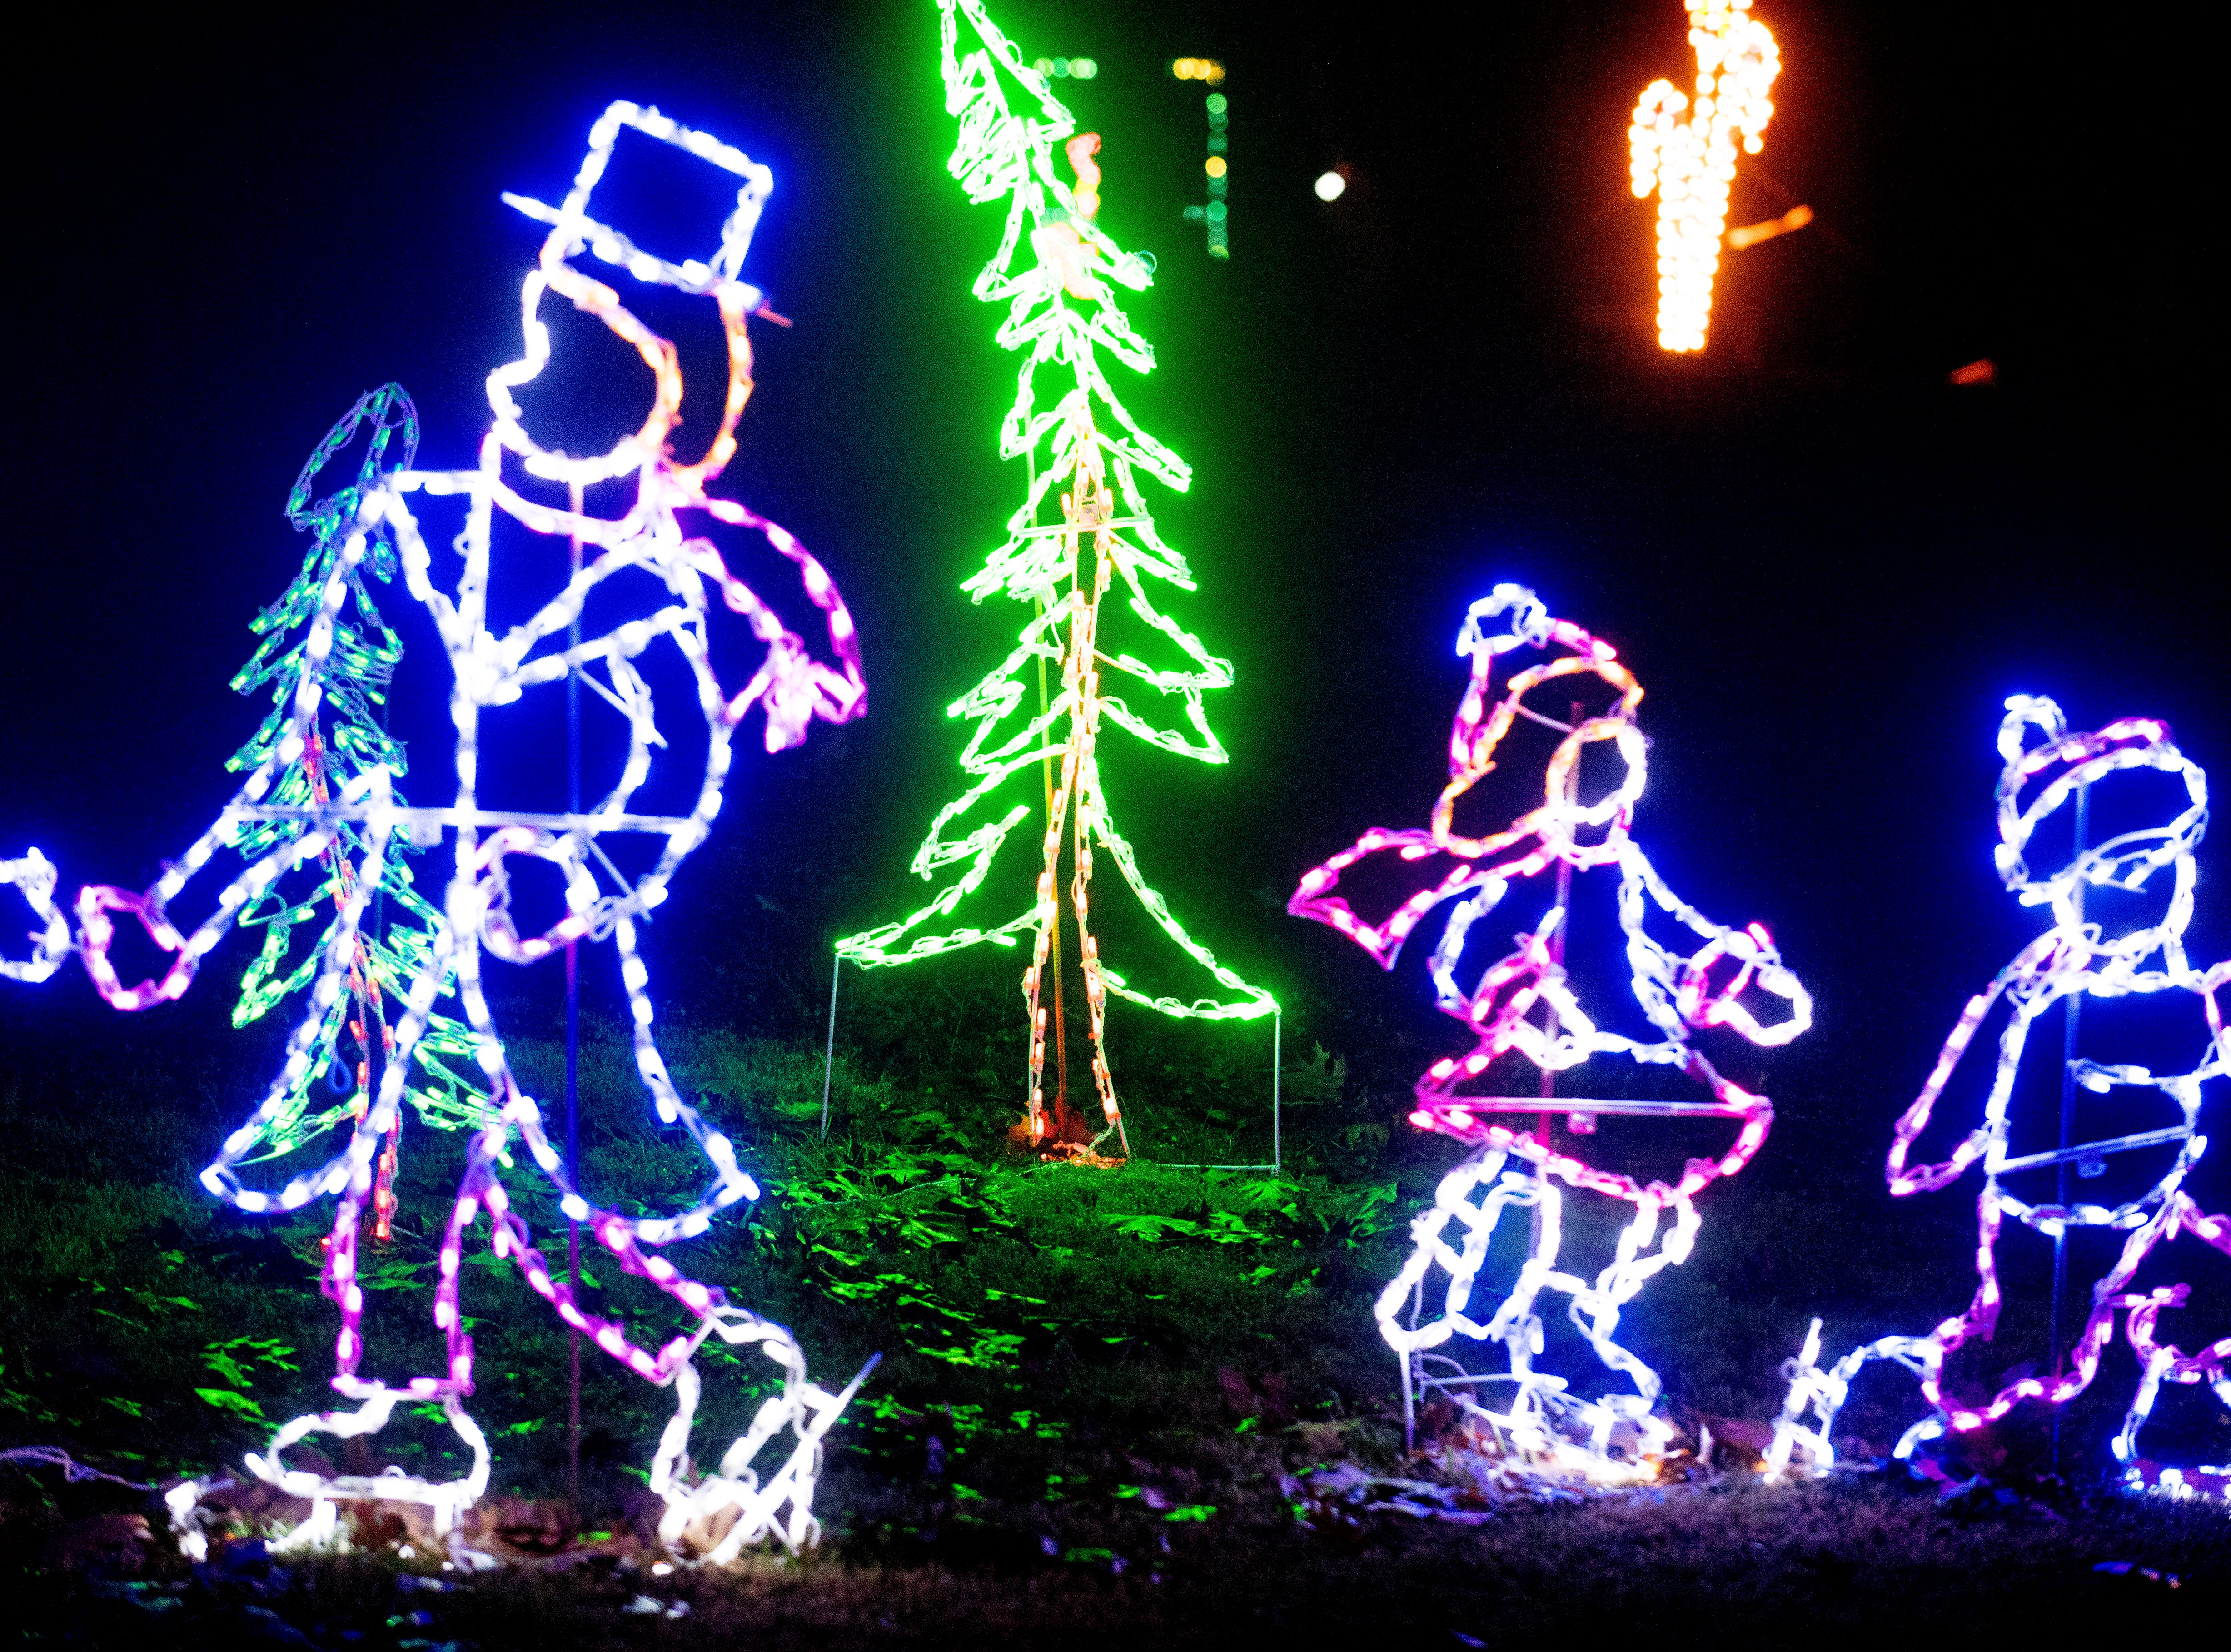 Holiday light decorations in the form of people ice skating at Knox CountyÕs 20th annual Holiday Festival of Lights kick off at The Cove at Concord Park in Farragut, Tennessee on Friday, December 21, 2018. The family-friendly event is free and will run through Dec. 29 from 6 to 9 p.m., excluding Christmas Eve and Christmas Day.